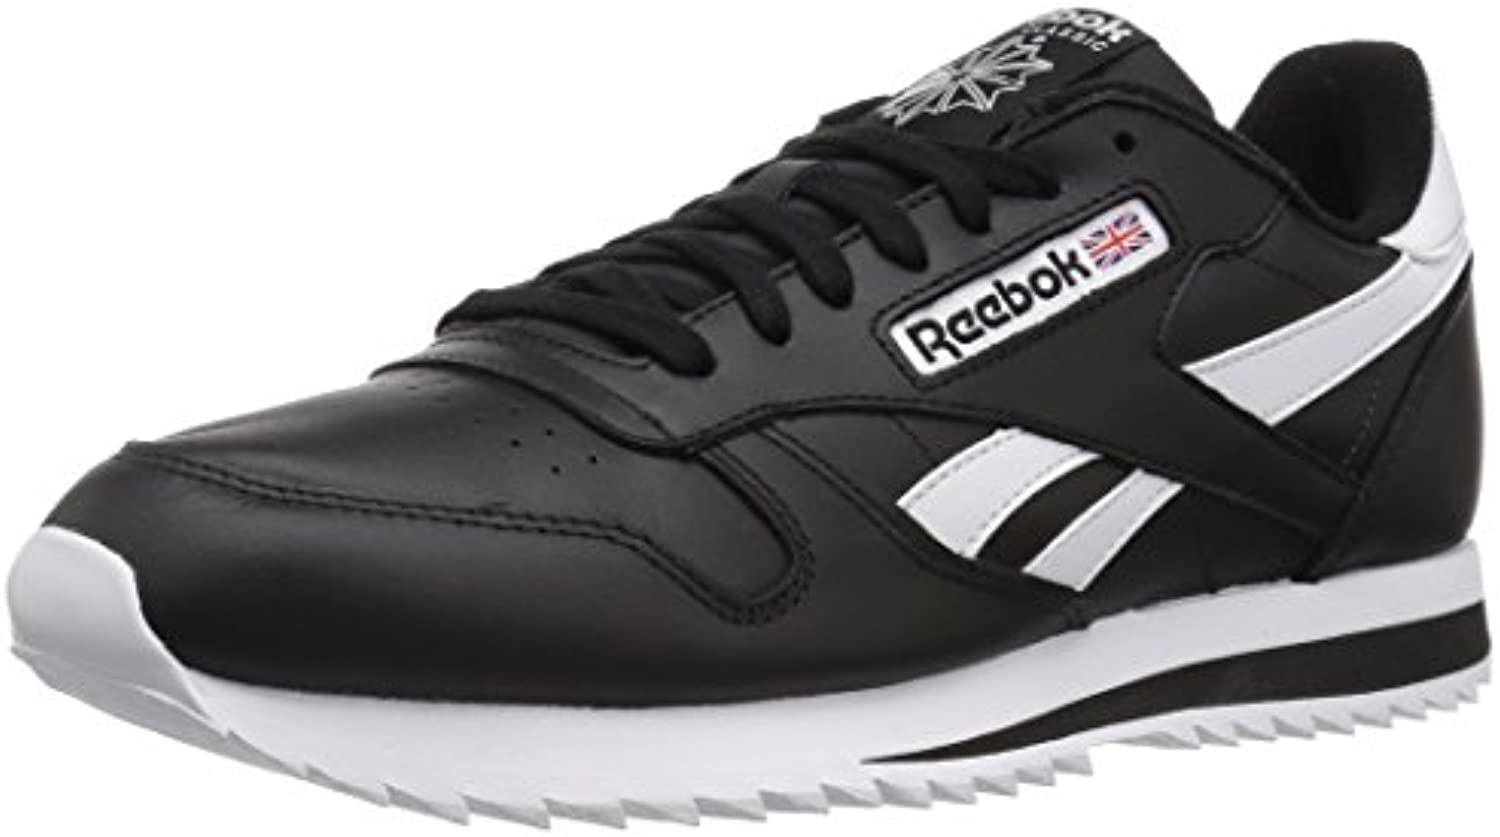 Reebok CL Leder Ripple Low BP Herren